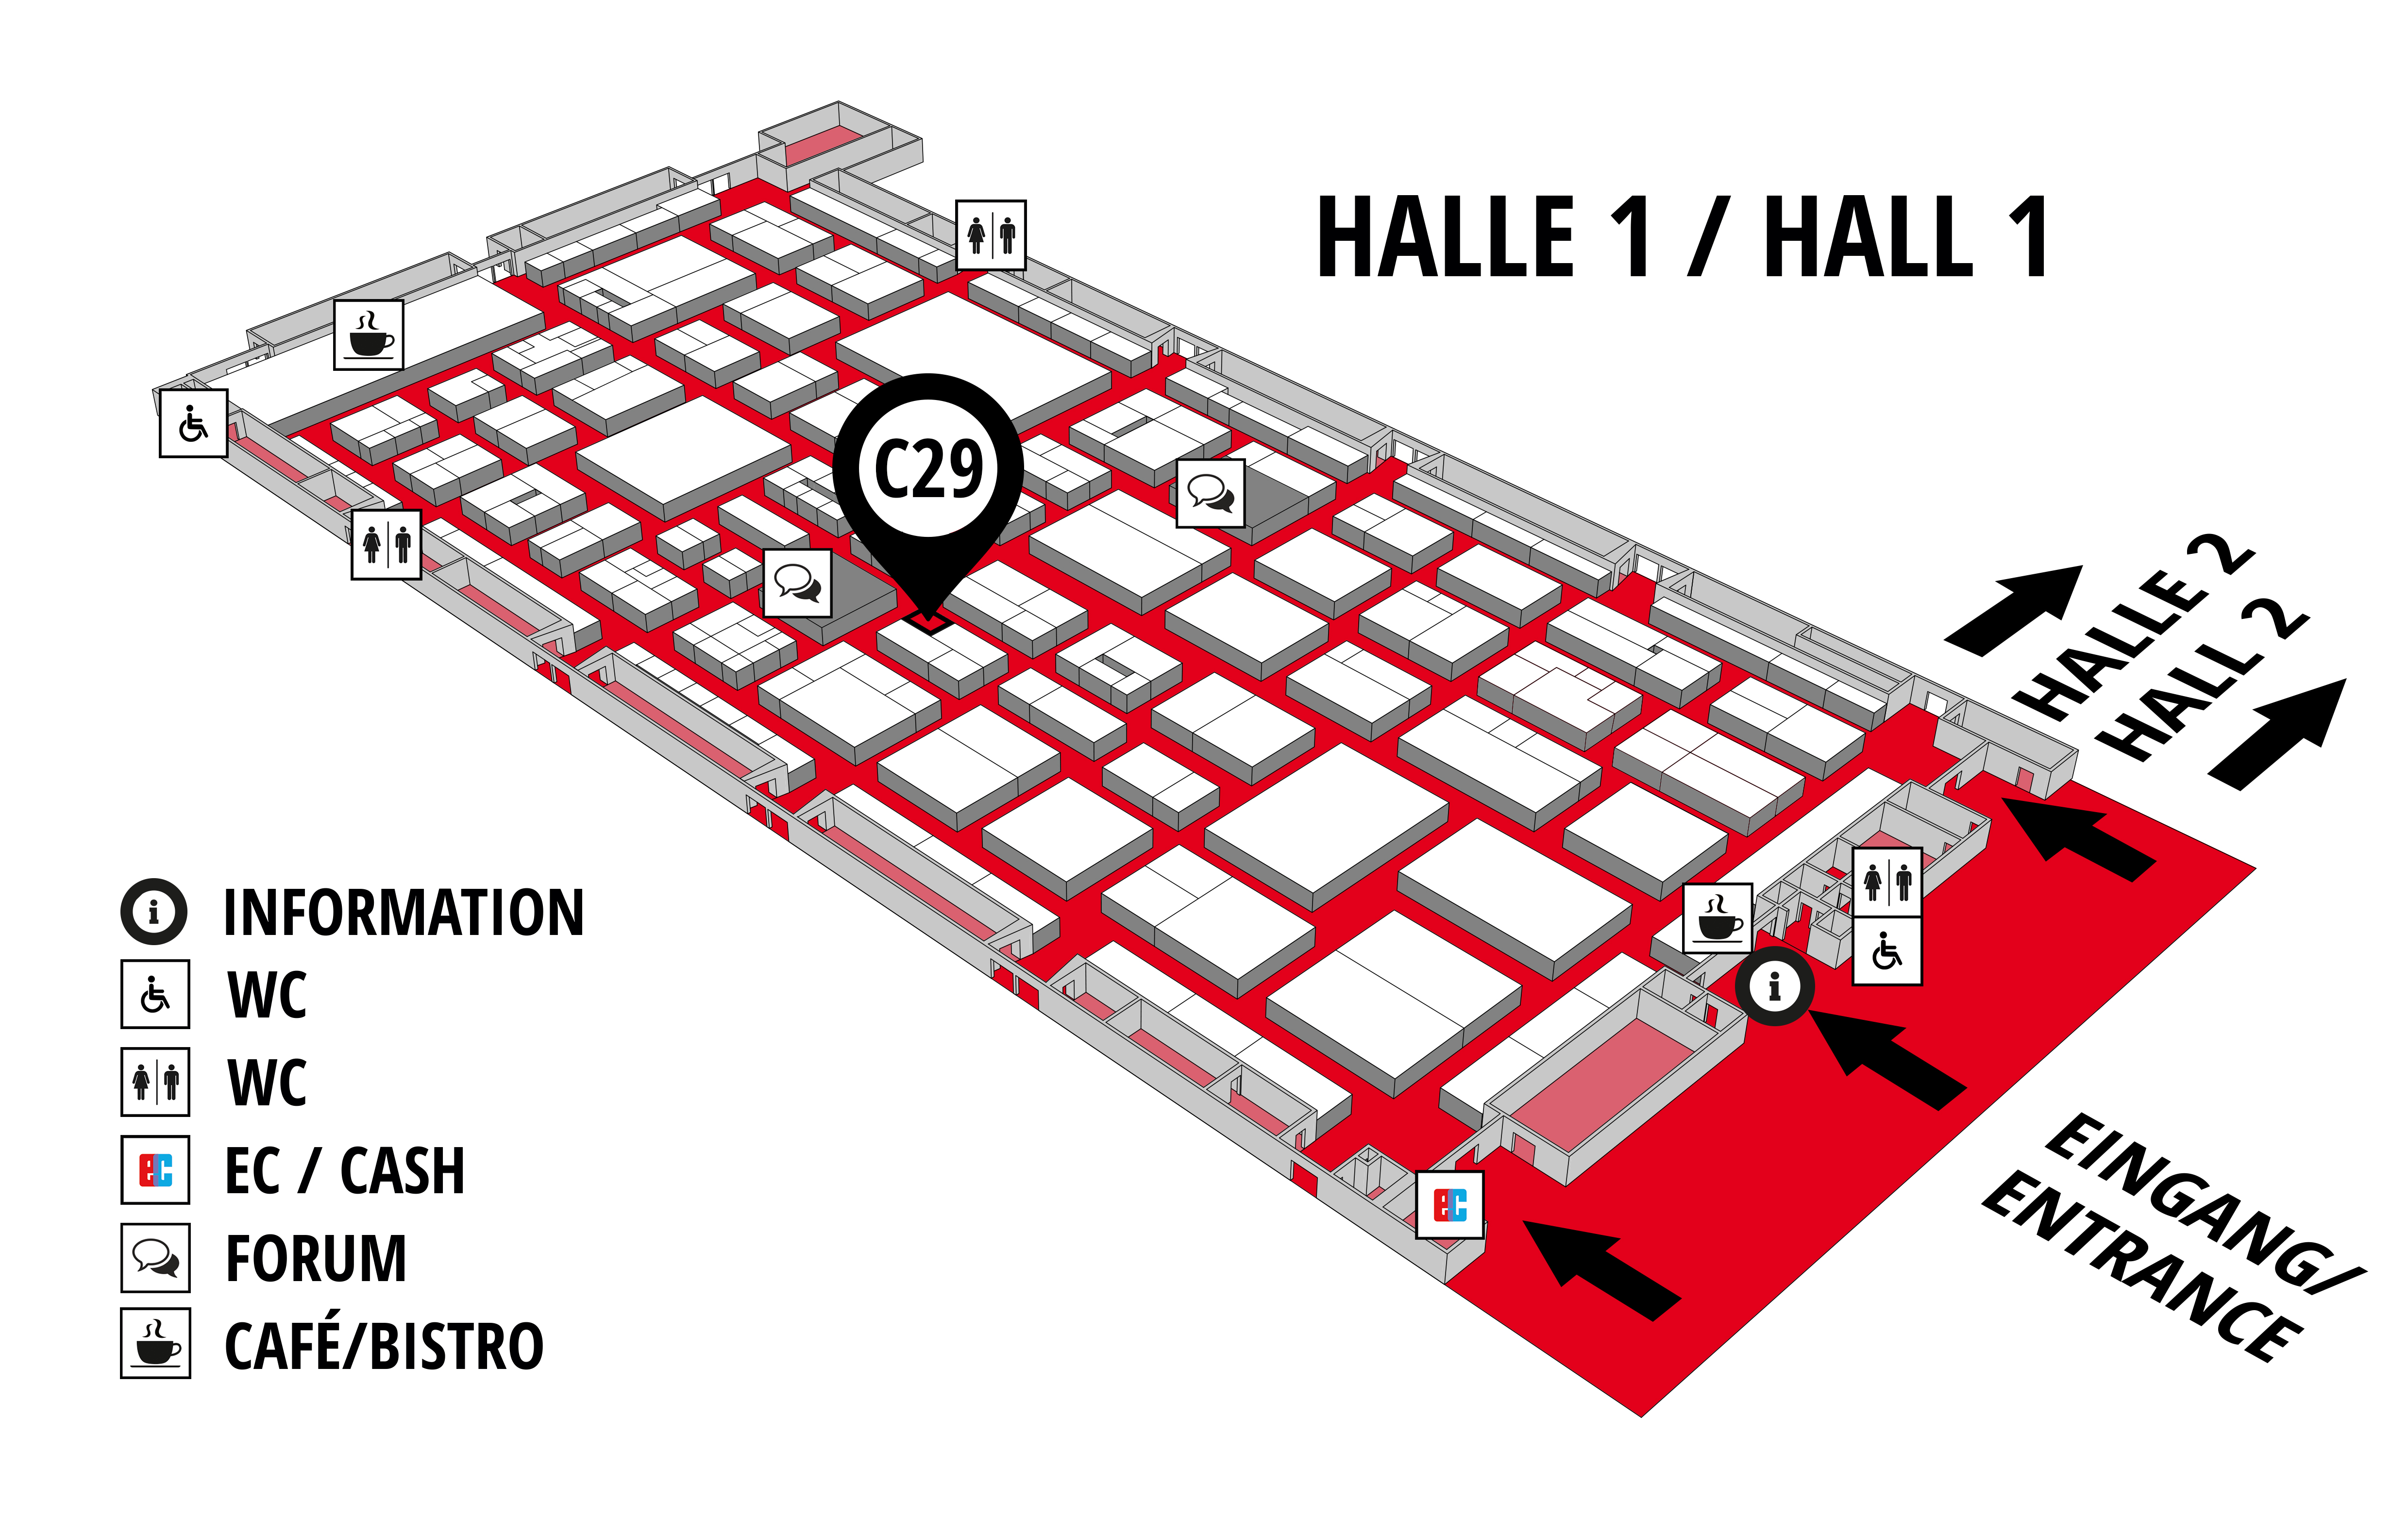 REHAB - Rehabilitation | Therapy | Care | Inclusion hall map (Hall 1): stand C29